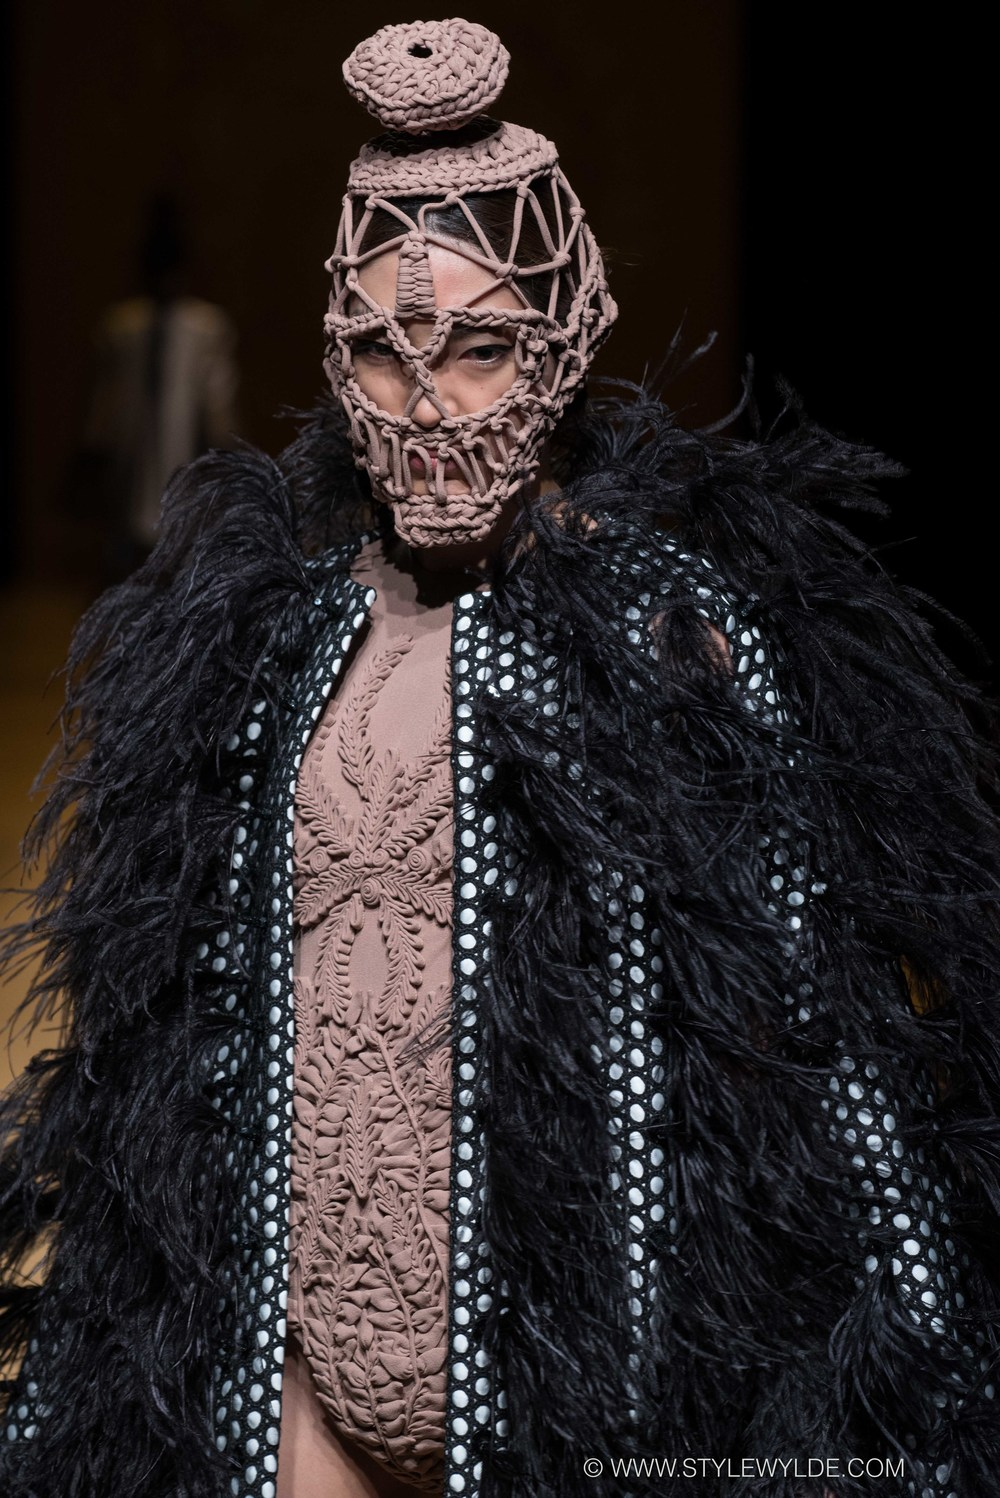 STYLEWYLDE-AsiaFashionMeets-Tokyo_Aw16-48.jpg